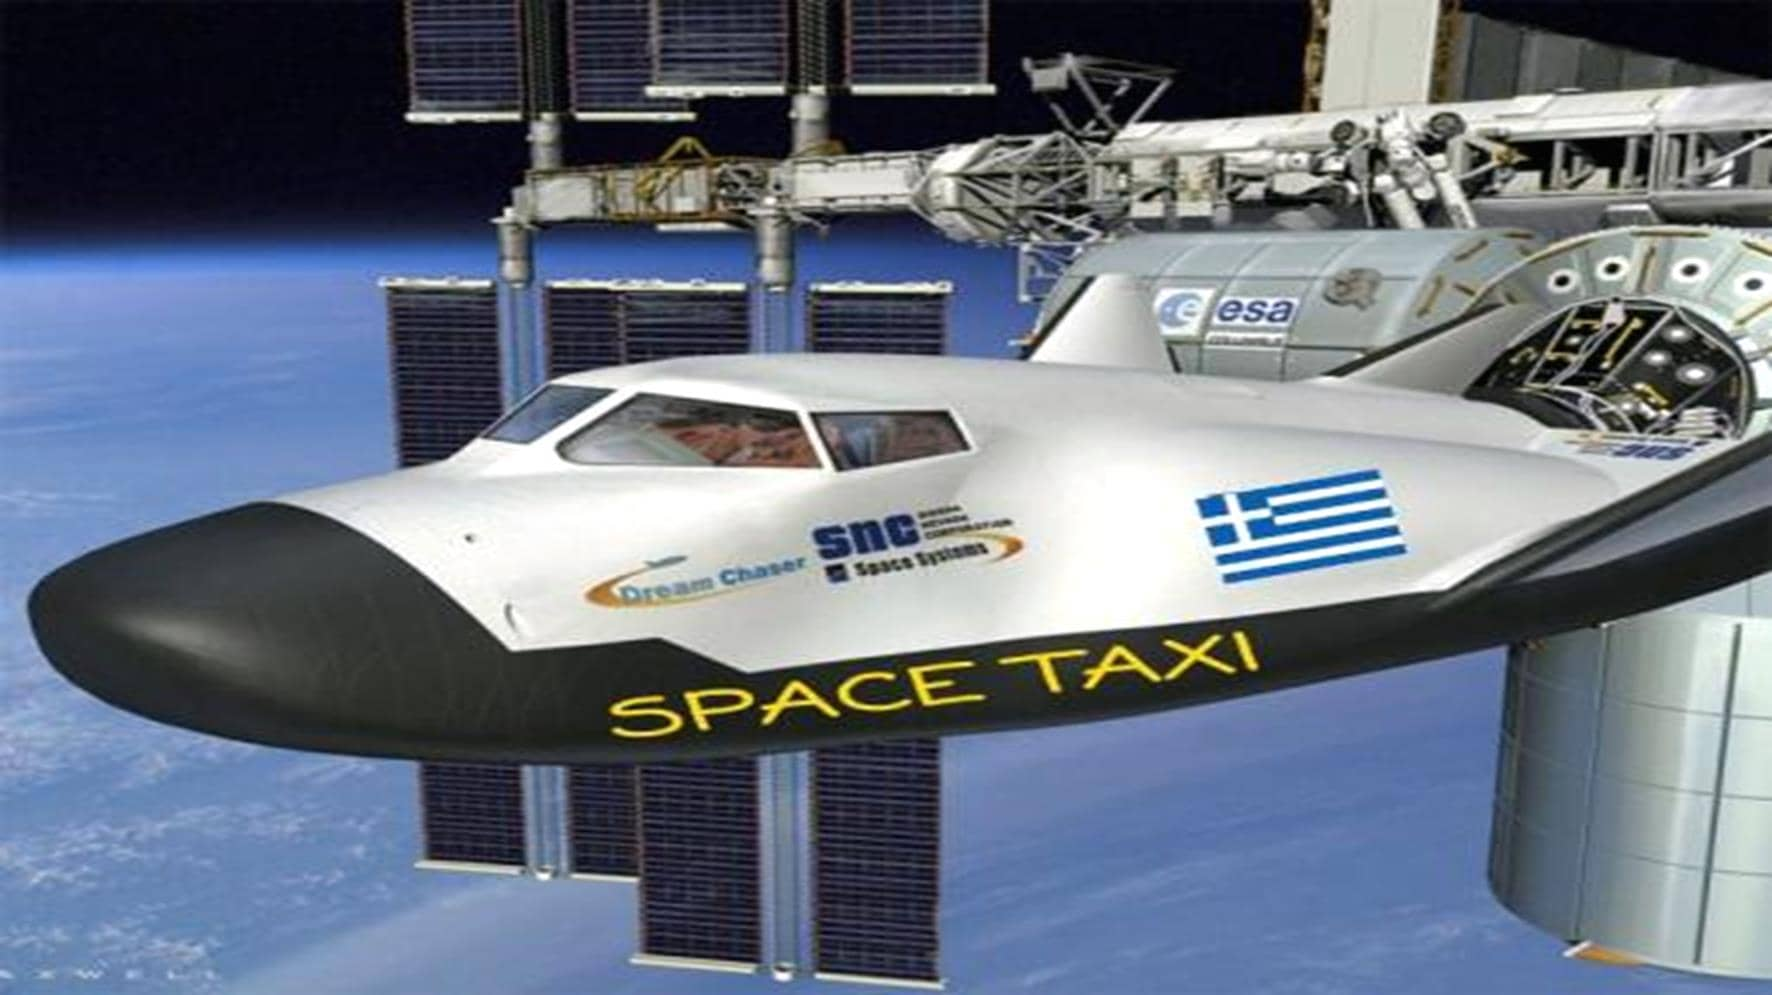 Greek Nasa (Copy)